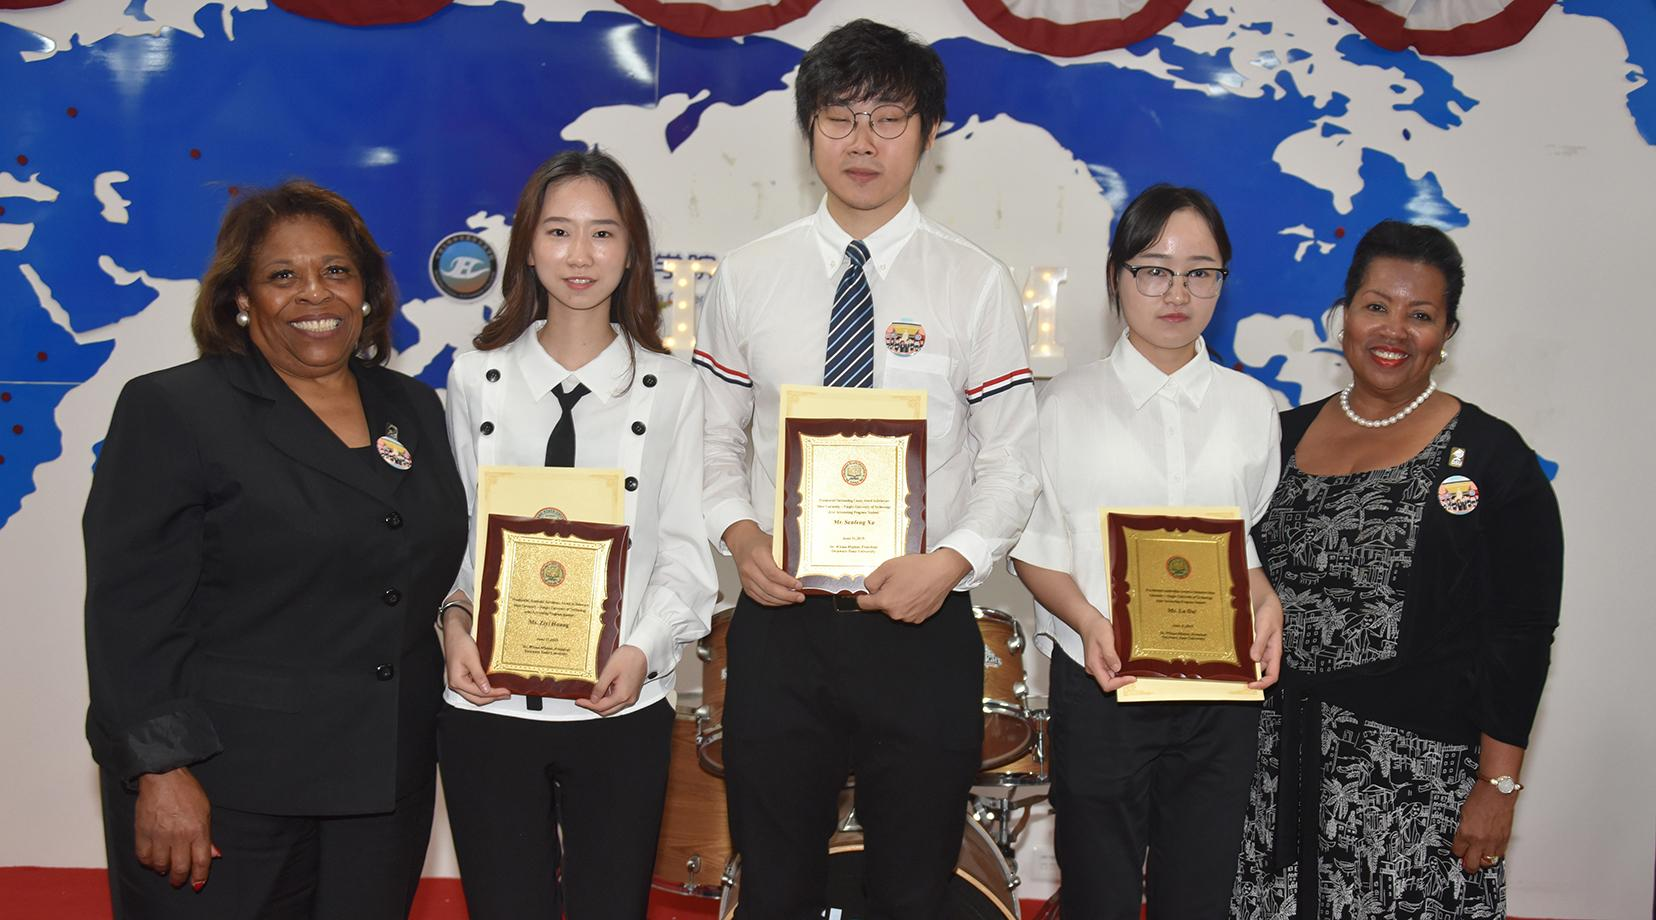 <p>Three students – Ziyi Zhang, Senfeng Xu and Lu Dai – were presented with Delaware State University's Presidential Academic Excellence Award. They are pictured with Dr. Wilma Mishoe and Dr. Devona Williams.</p>